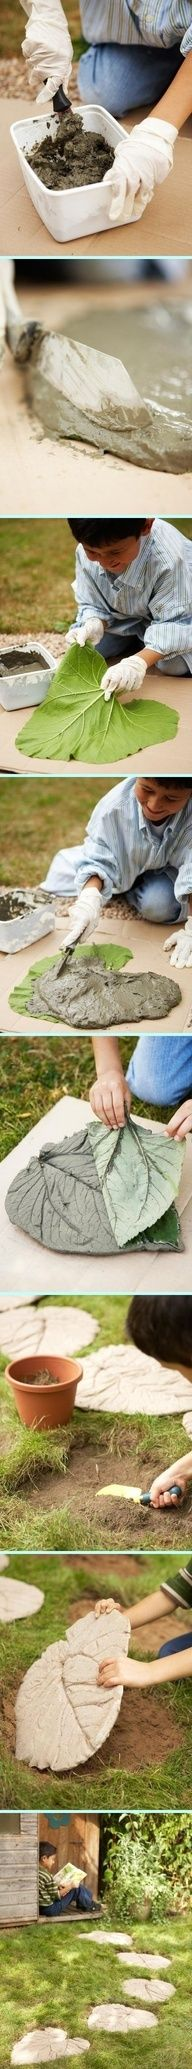 Leaf stepping stones DIY - my parents have an elephant ear tree that would work great for this